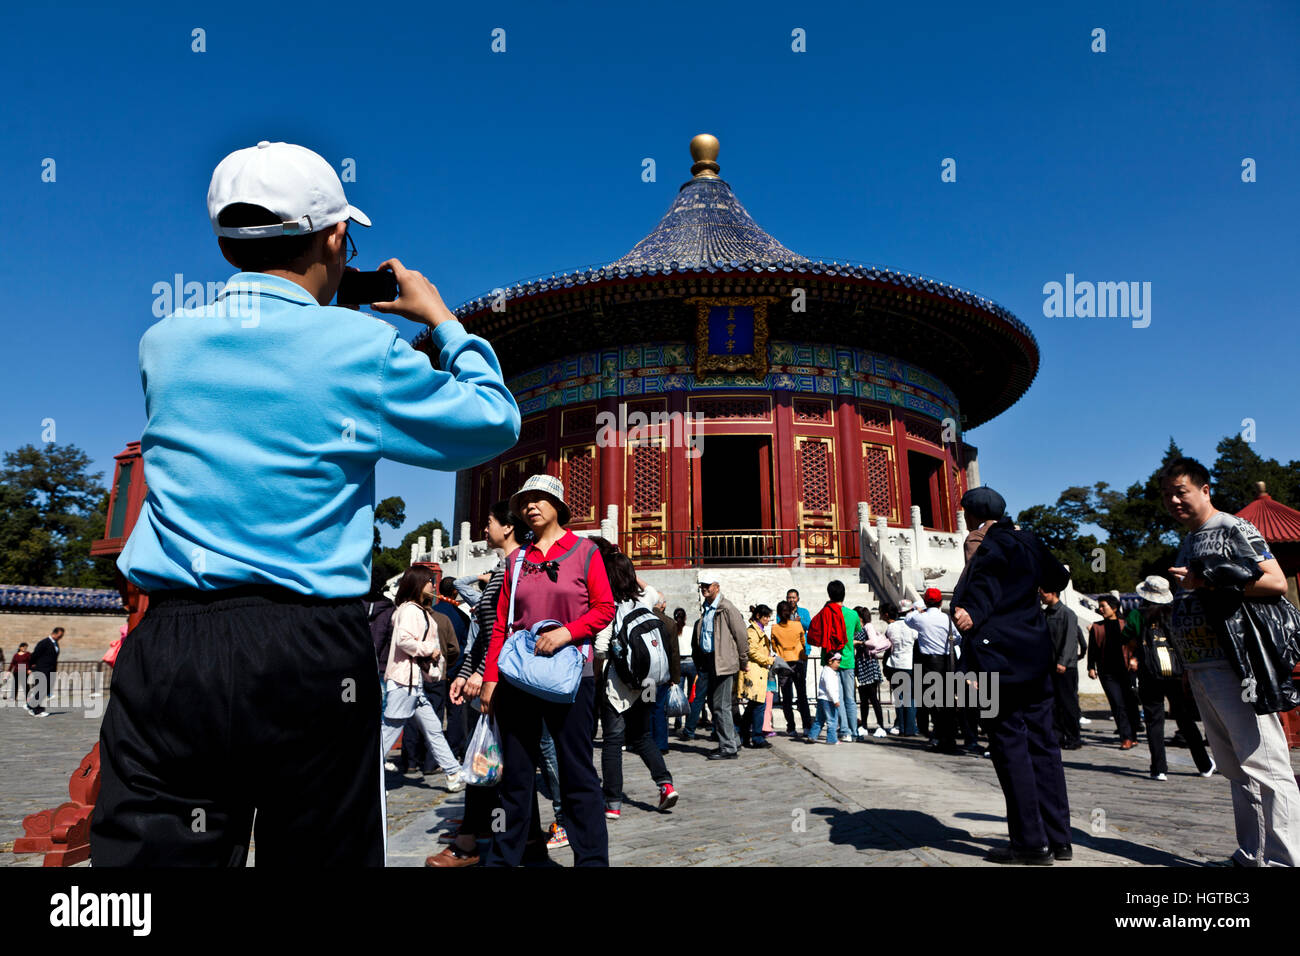 Tourists visiting the Temple of the Imperial Vault of Heaven, Beijing, China. - Stock Image